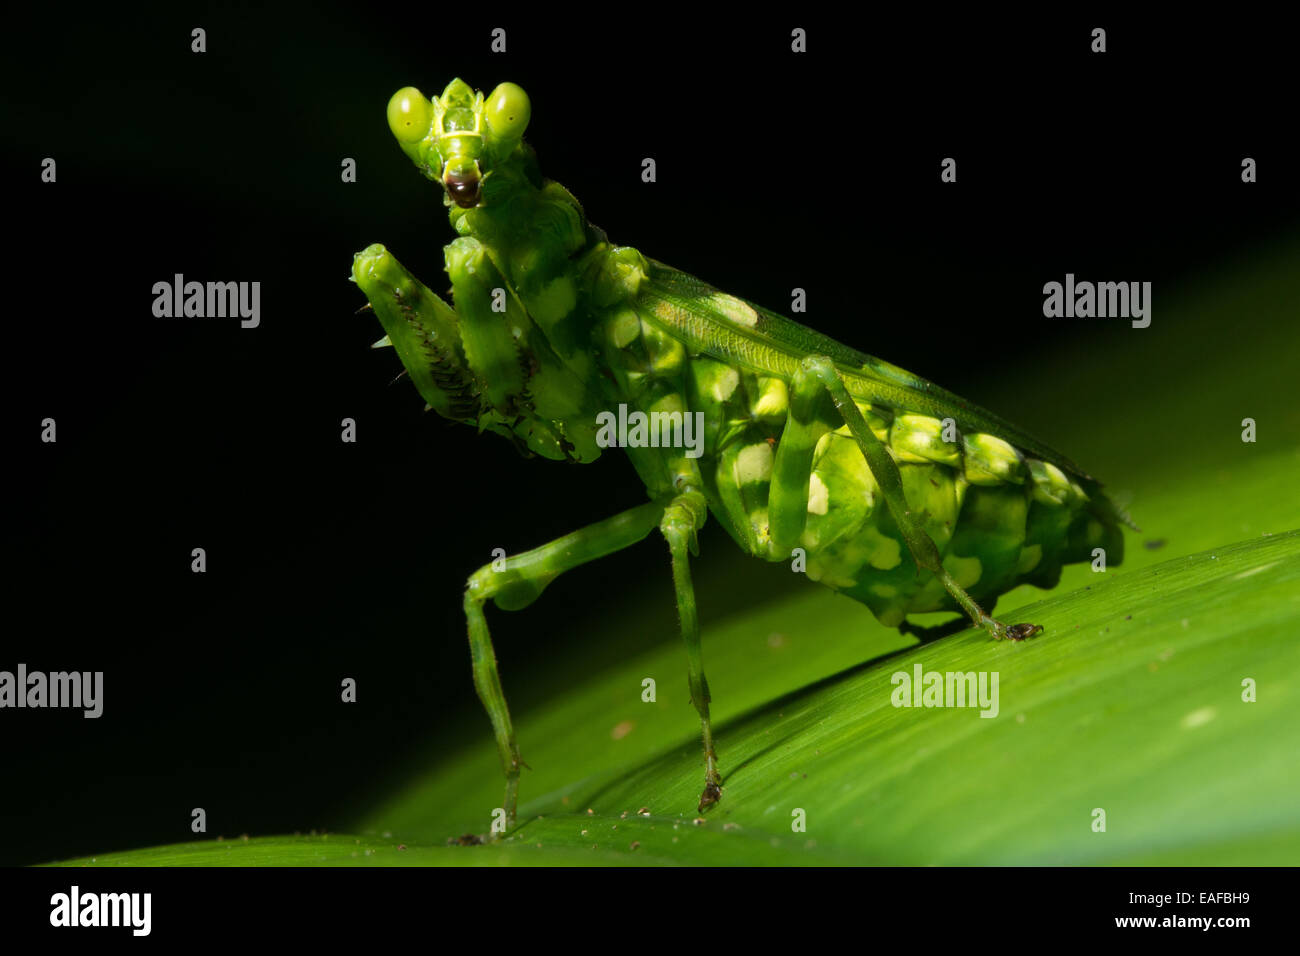 A praying mantis encountered in the jungle in Bornean Malaysia. - Stock Image